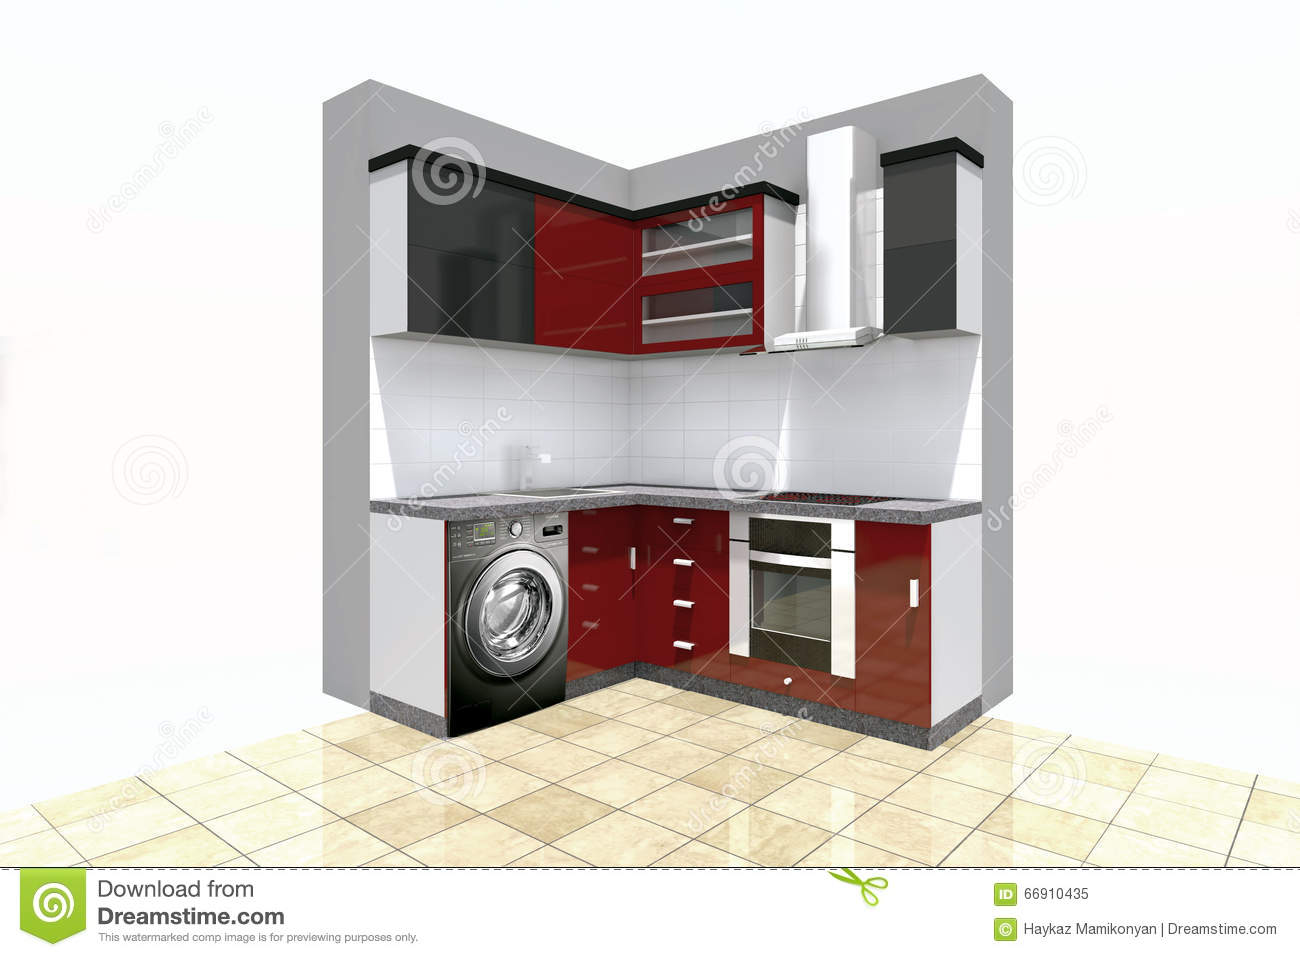 Kitchen design stock illustration. Illustration of interior - 66910435